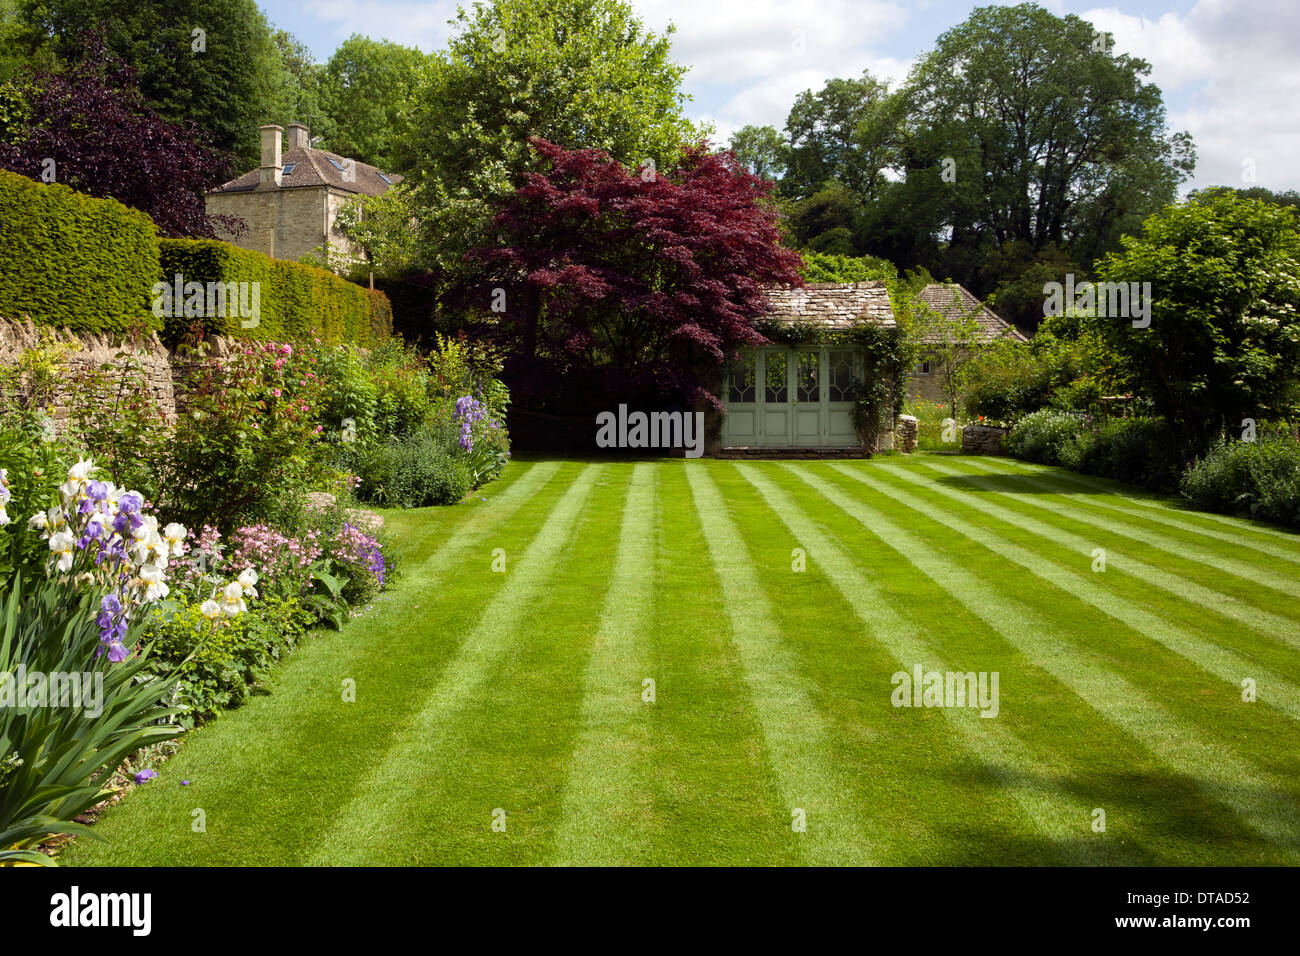 UK gardens. Manicured lawn with mower stripes in a summer garden. - Stock Image